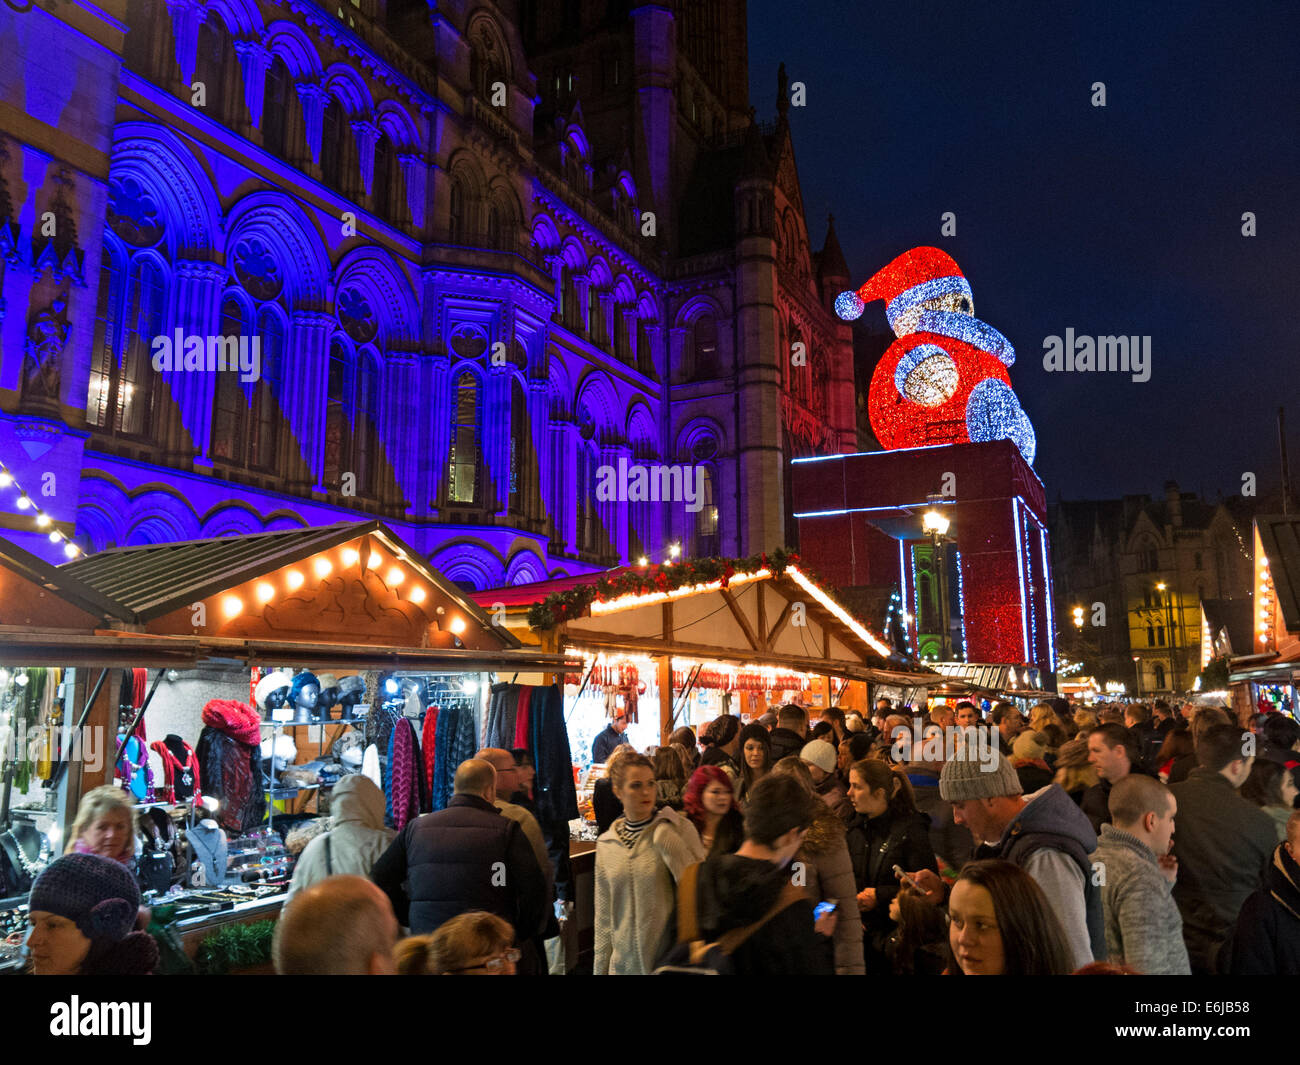 Manchester December Christmas Market at dusk, with Santa on town hall, Albert Square, England, UK - Stock Image